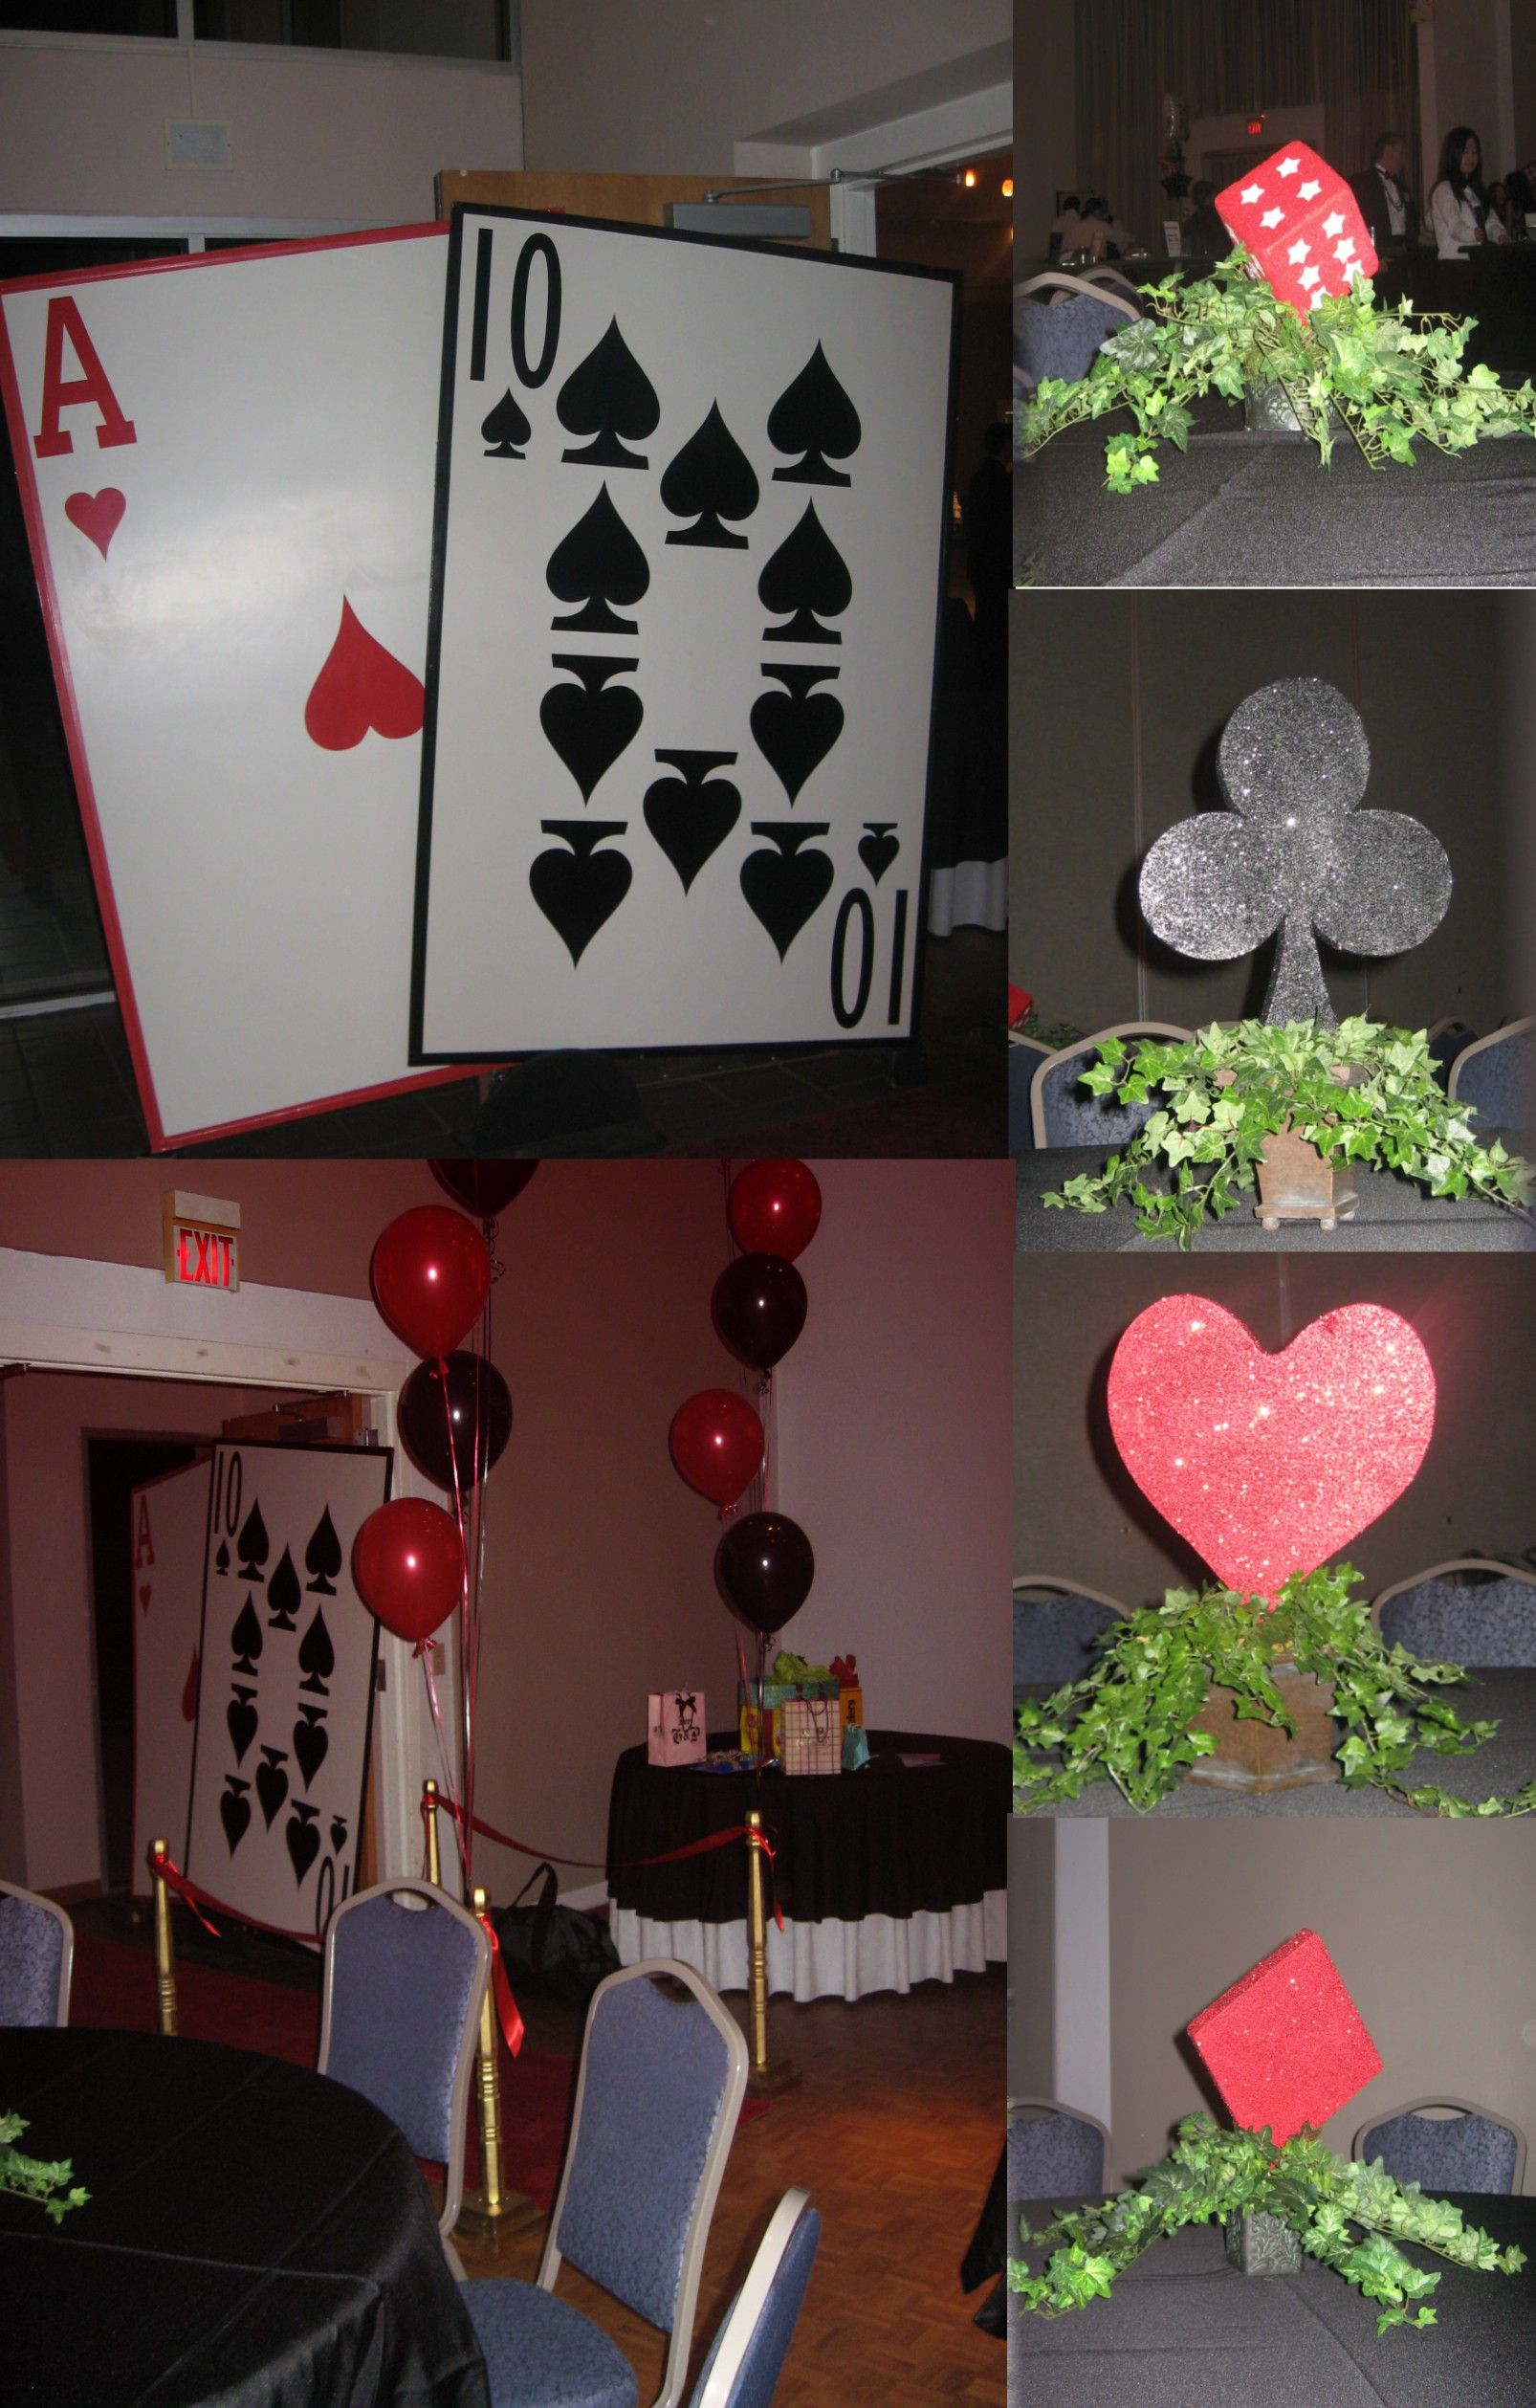 diy casino party decorations how to make a budget diy poker theme centerpiece youtube - Casino Party Decorations